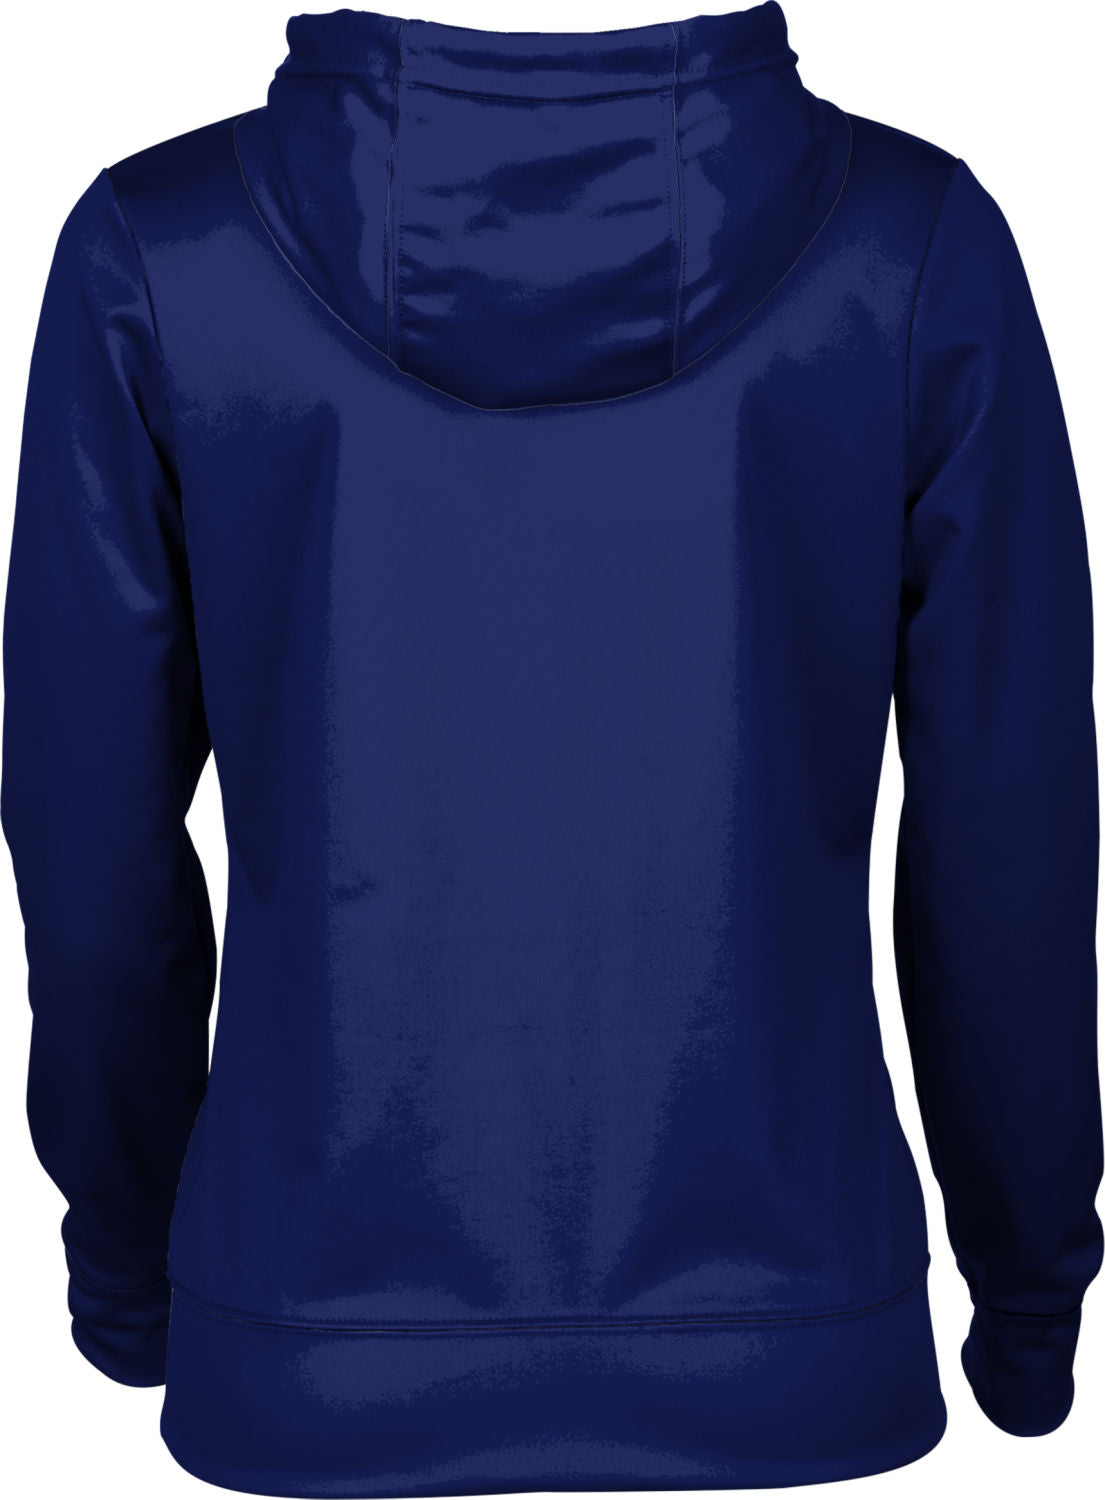 Brigham Young: Girls' Pullover Hoodie - Solid